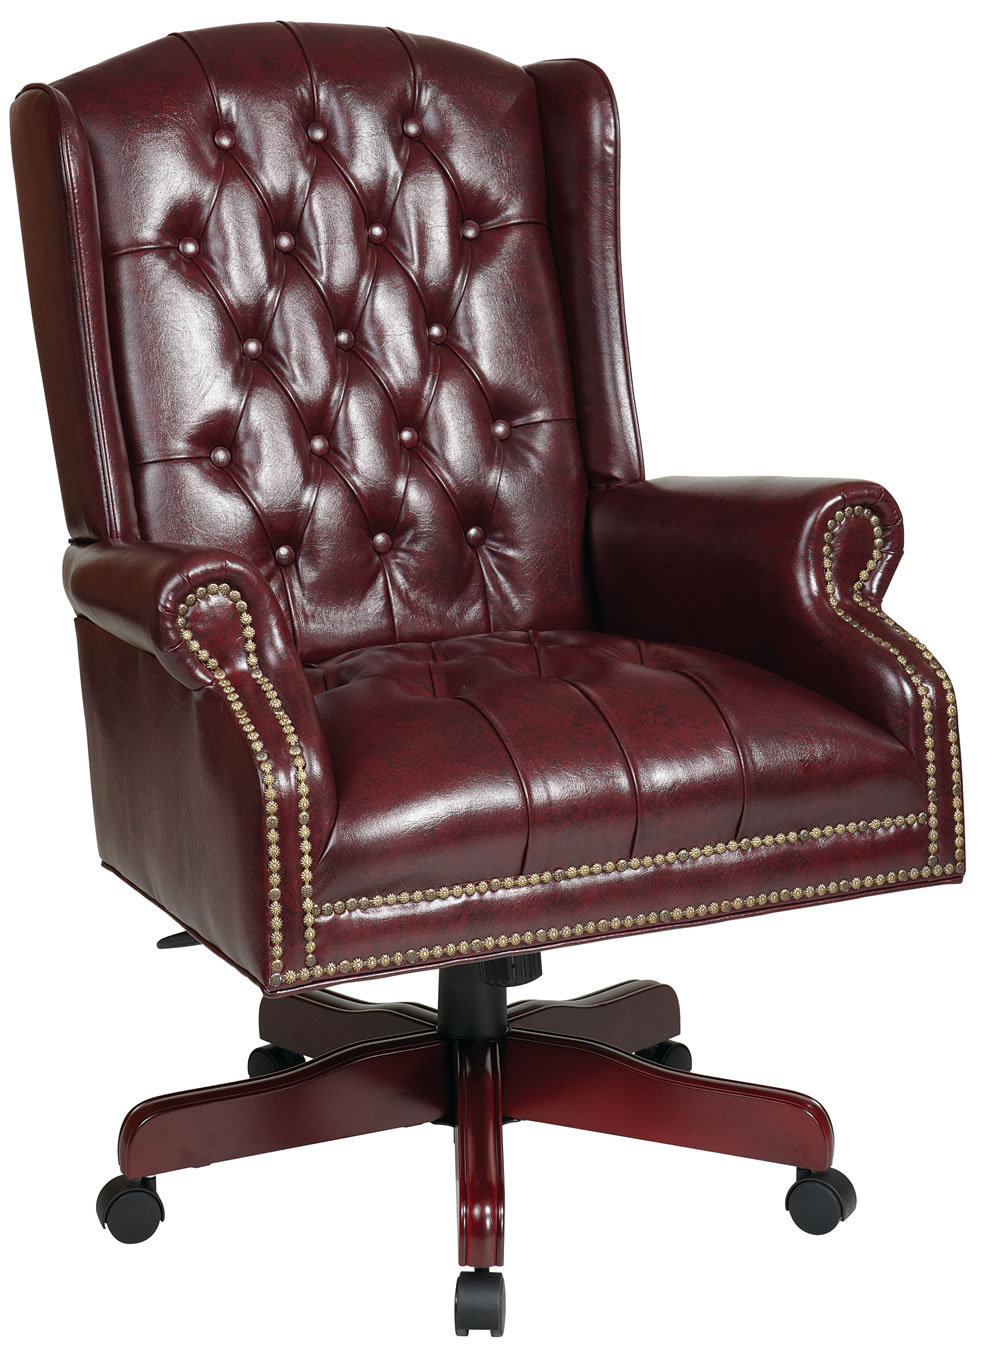 High Wing Back Swivel Lounge Oxblood Burgundy Vinyl